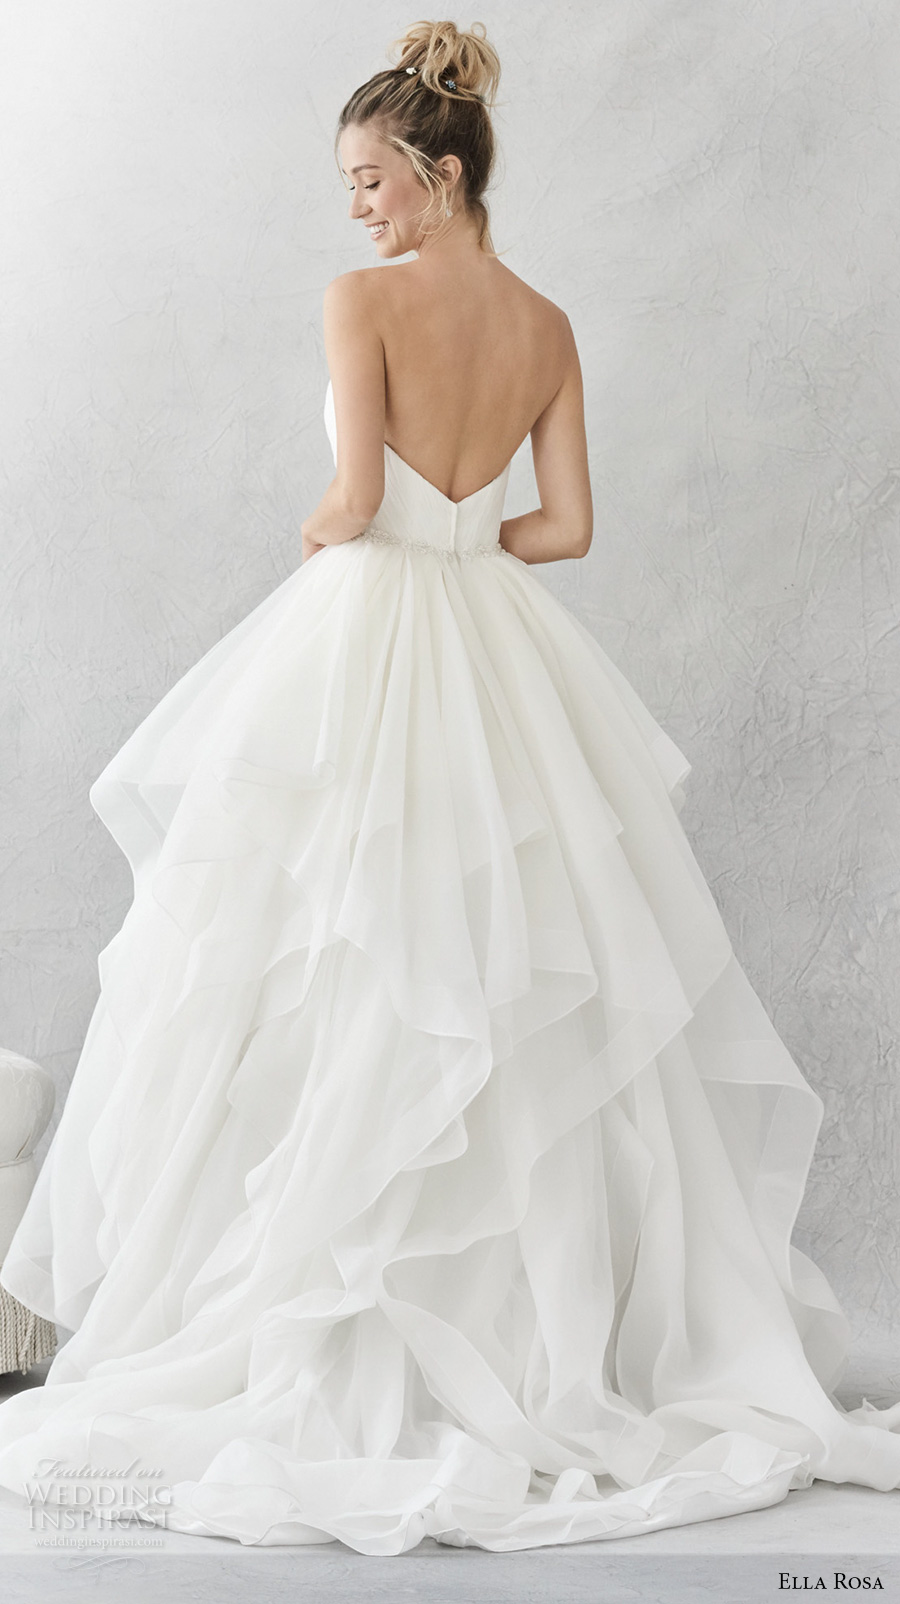 ella rosa spring 2017 bridal strapless sweetheart neckline wrap over bodice simple layer skirt ball gown a line wedding dress open back chapel train (376) bv